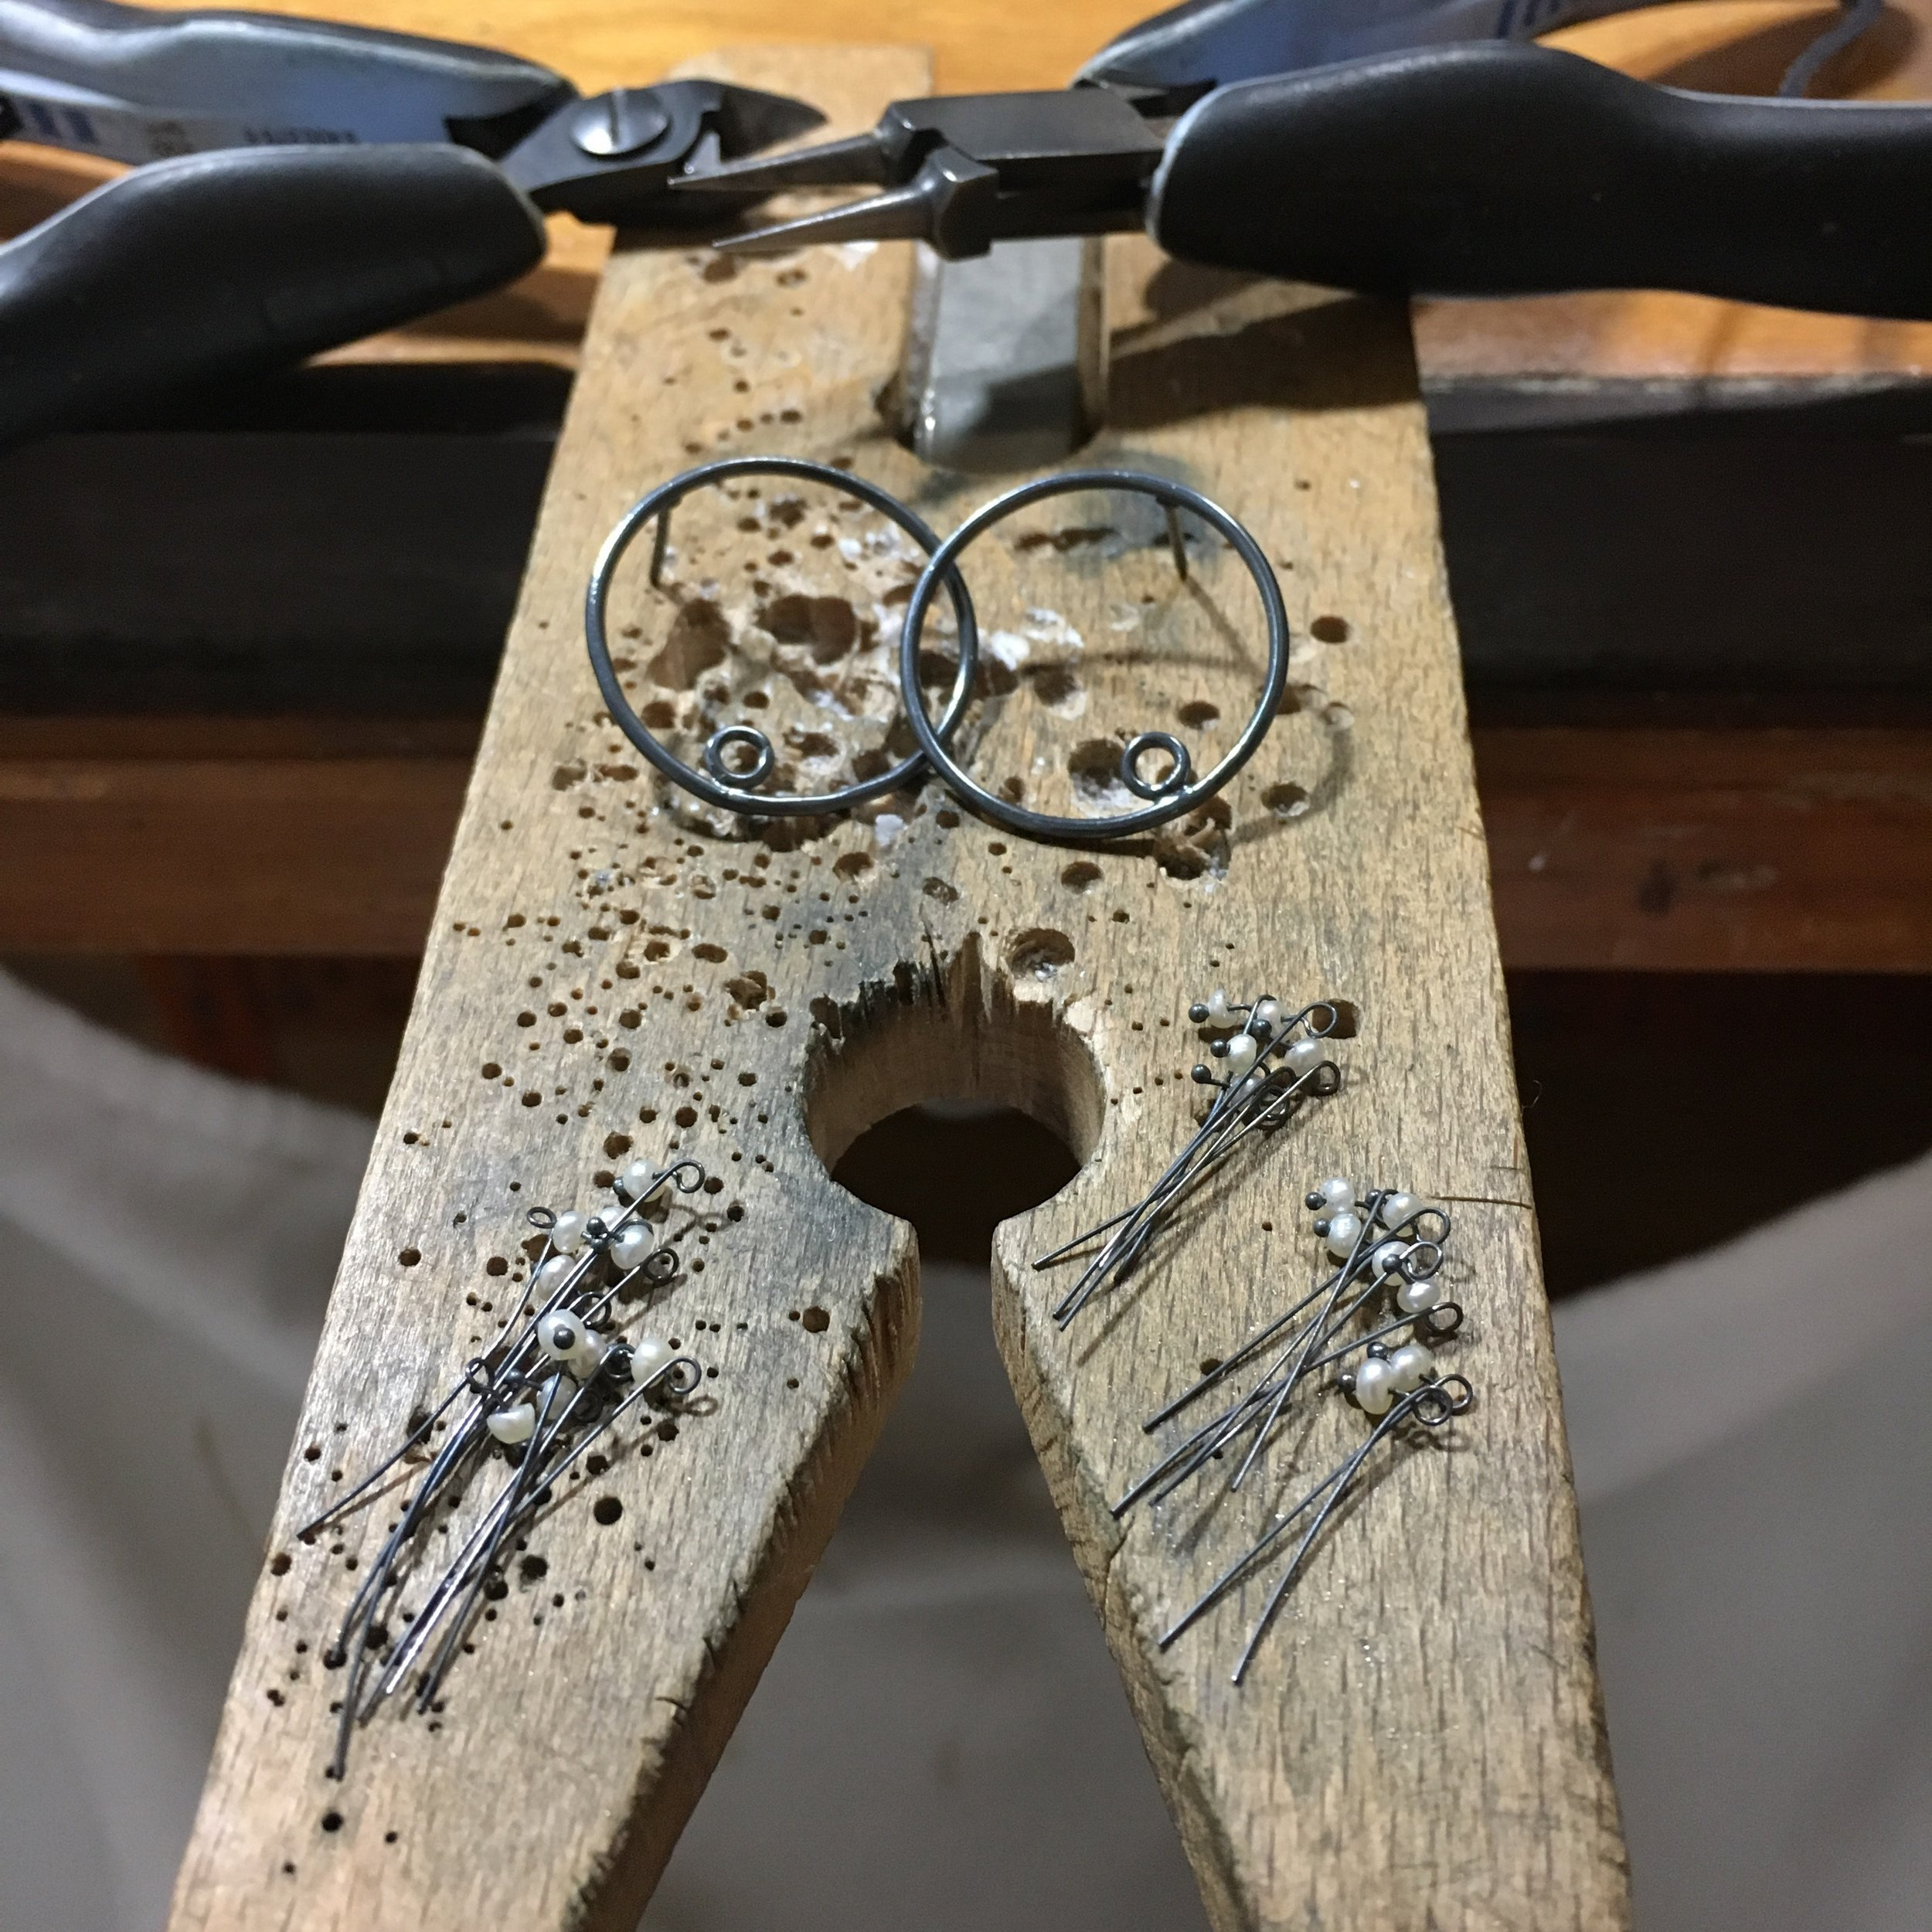 A pair of Adva hoop earrings in pearls and oxidized recycled sterling silver sits on Michelle Pajak-Reynolds workbench. Photo credit: Michelle Pajak-Reynolds